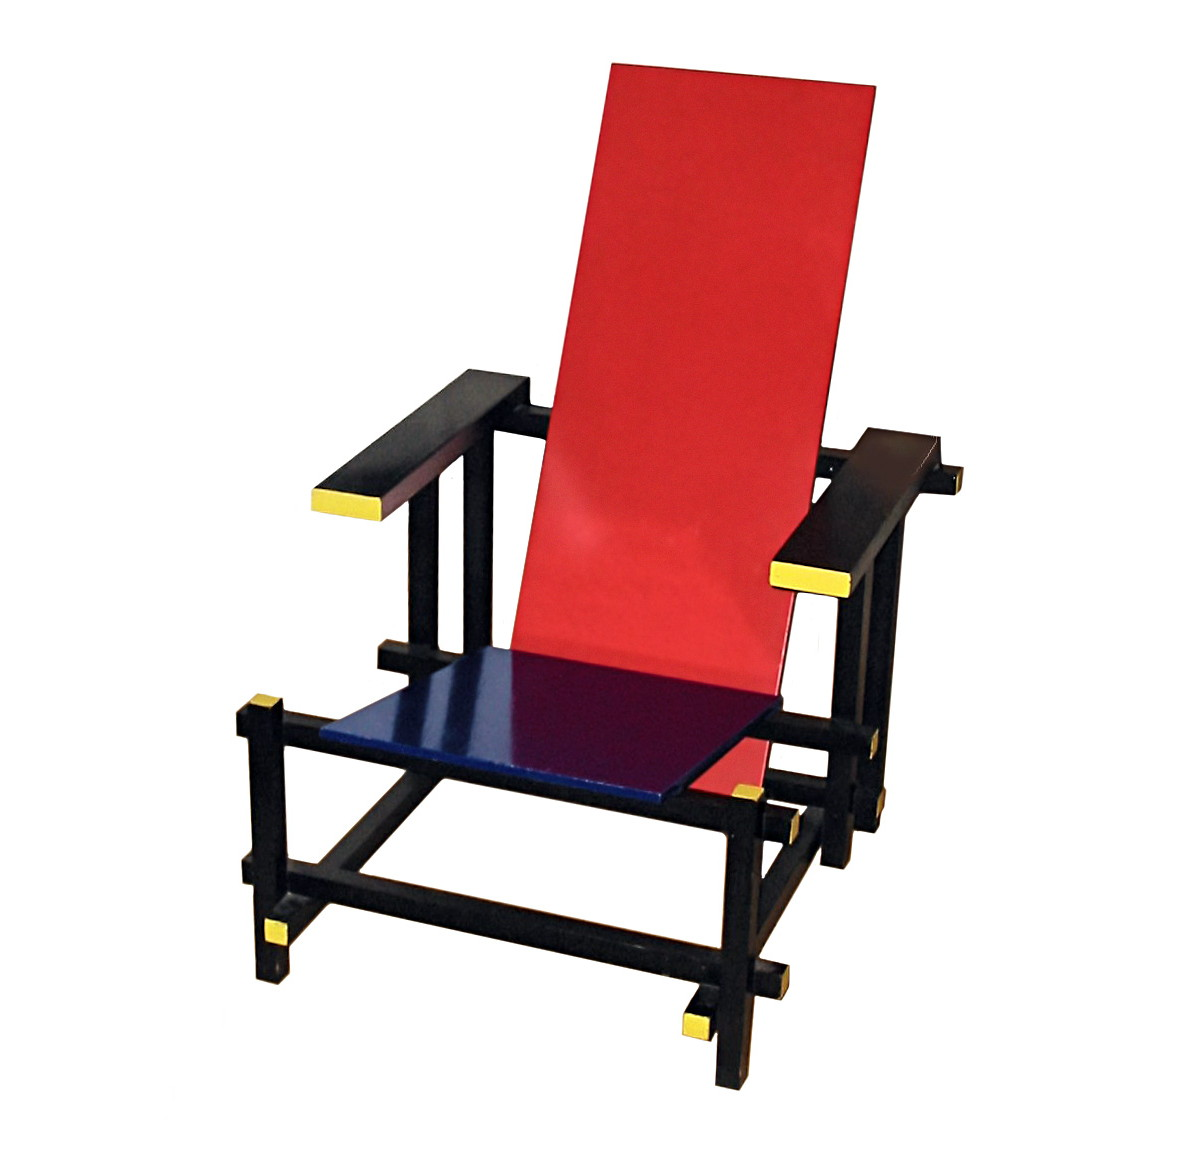 file rietveld chair wikimedia commons. Black Bedroom Furniture Sets. Home Design Ideas